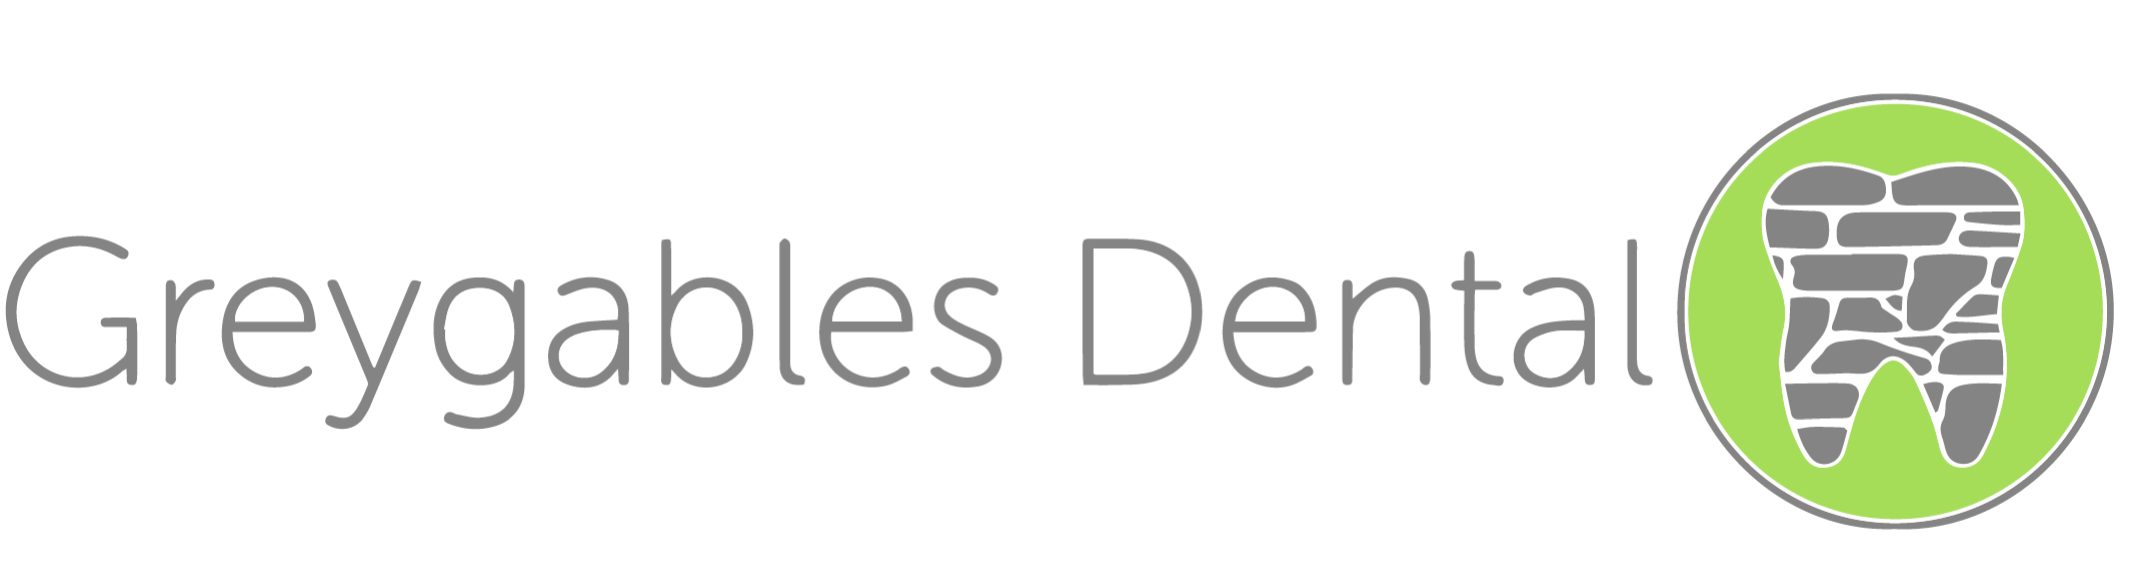 Greygables Dental